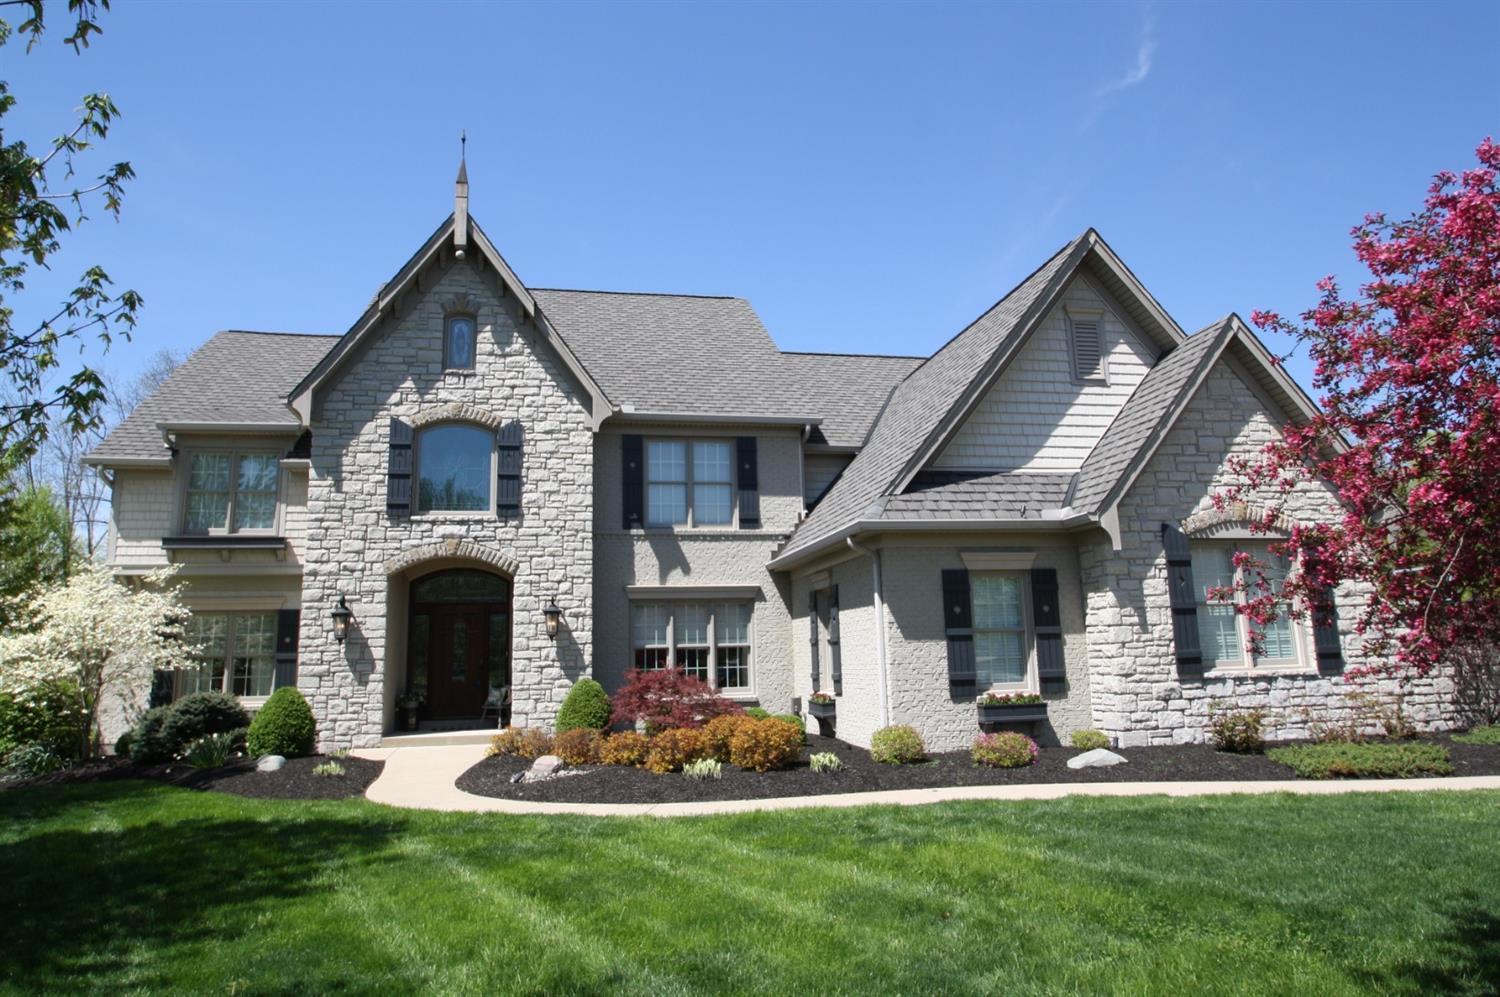 5617 Fox Ridge Ct Monfort Hts., OH